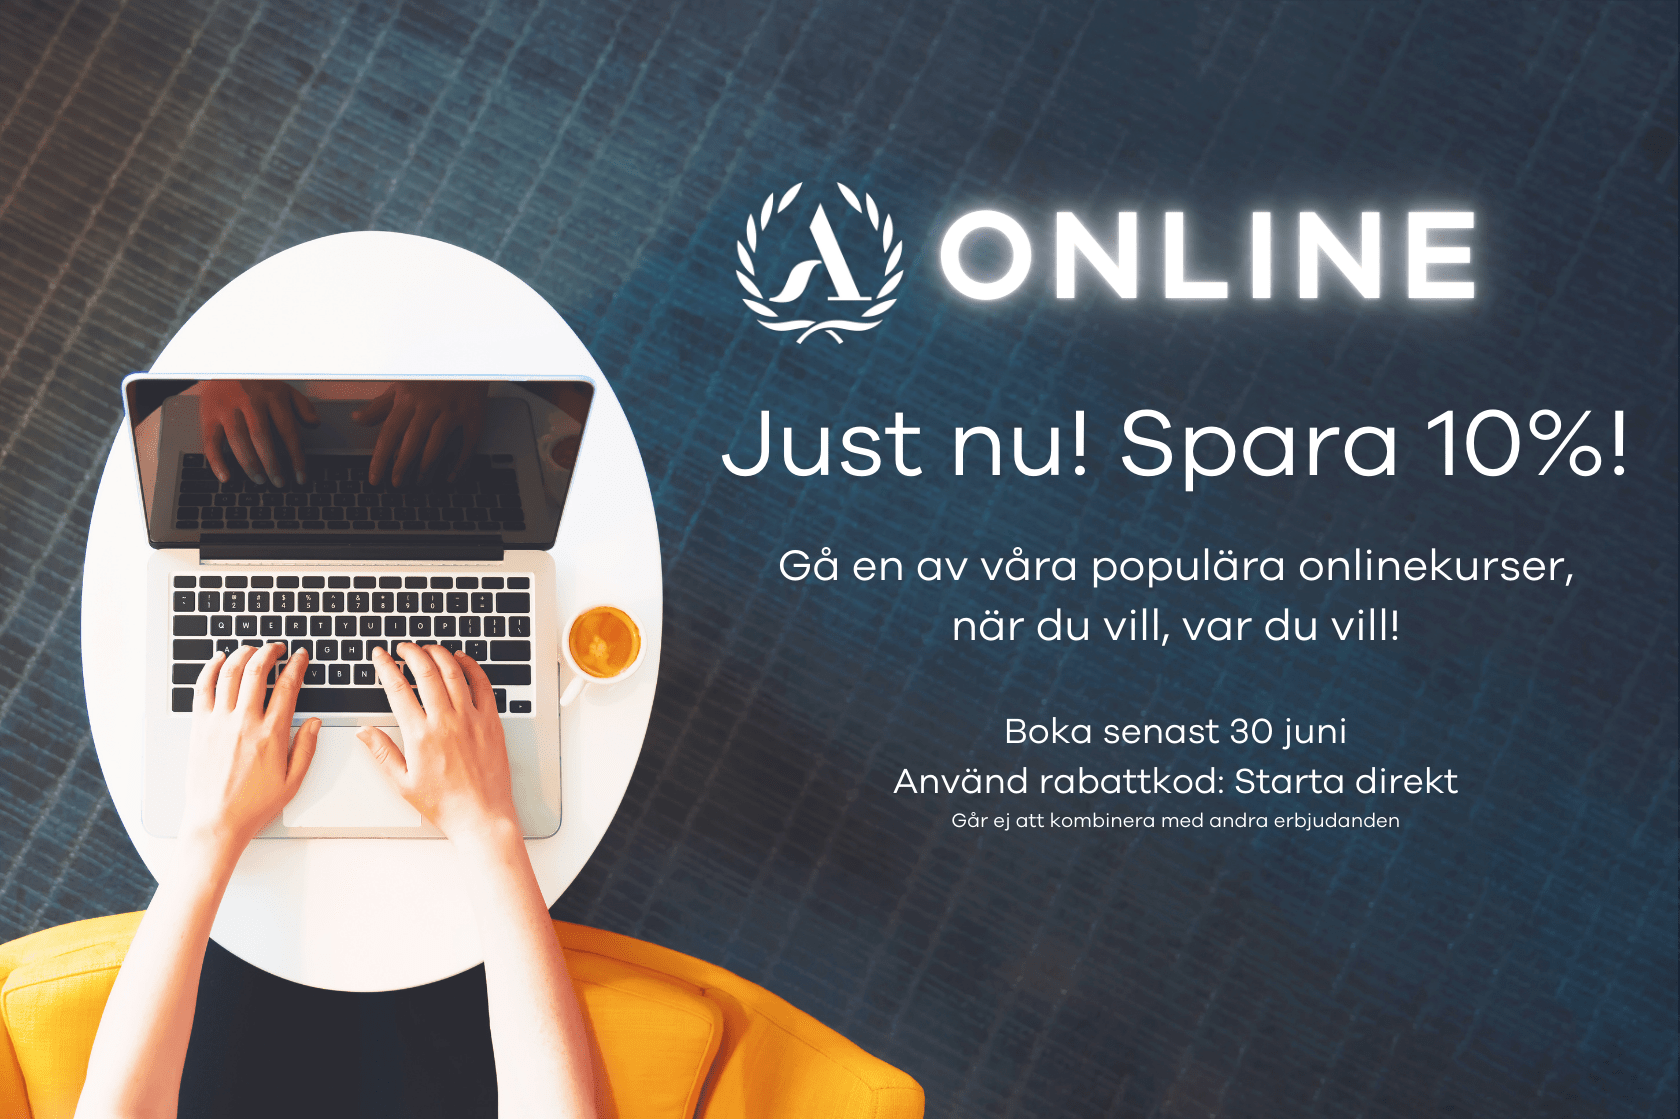 Onlinekurser early bird 10%